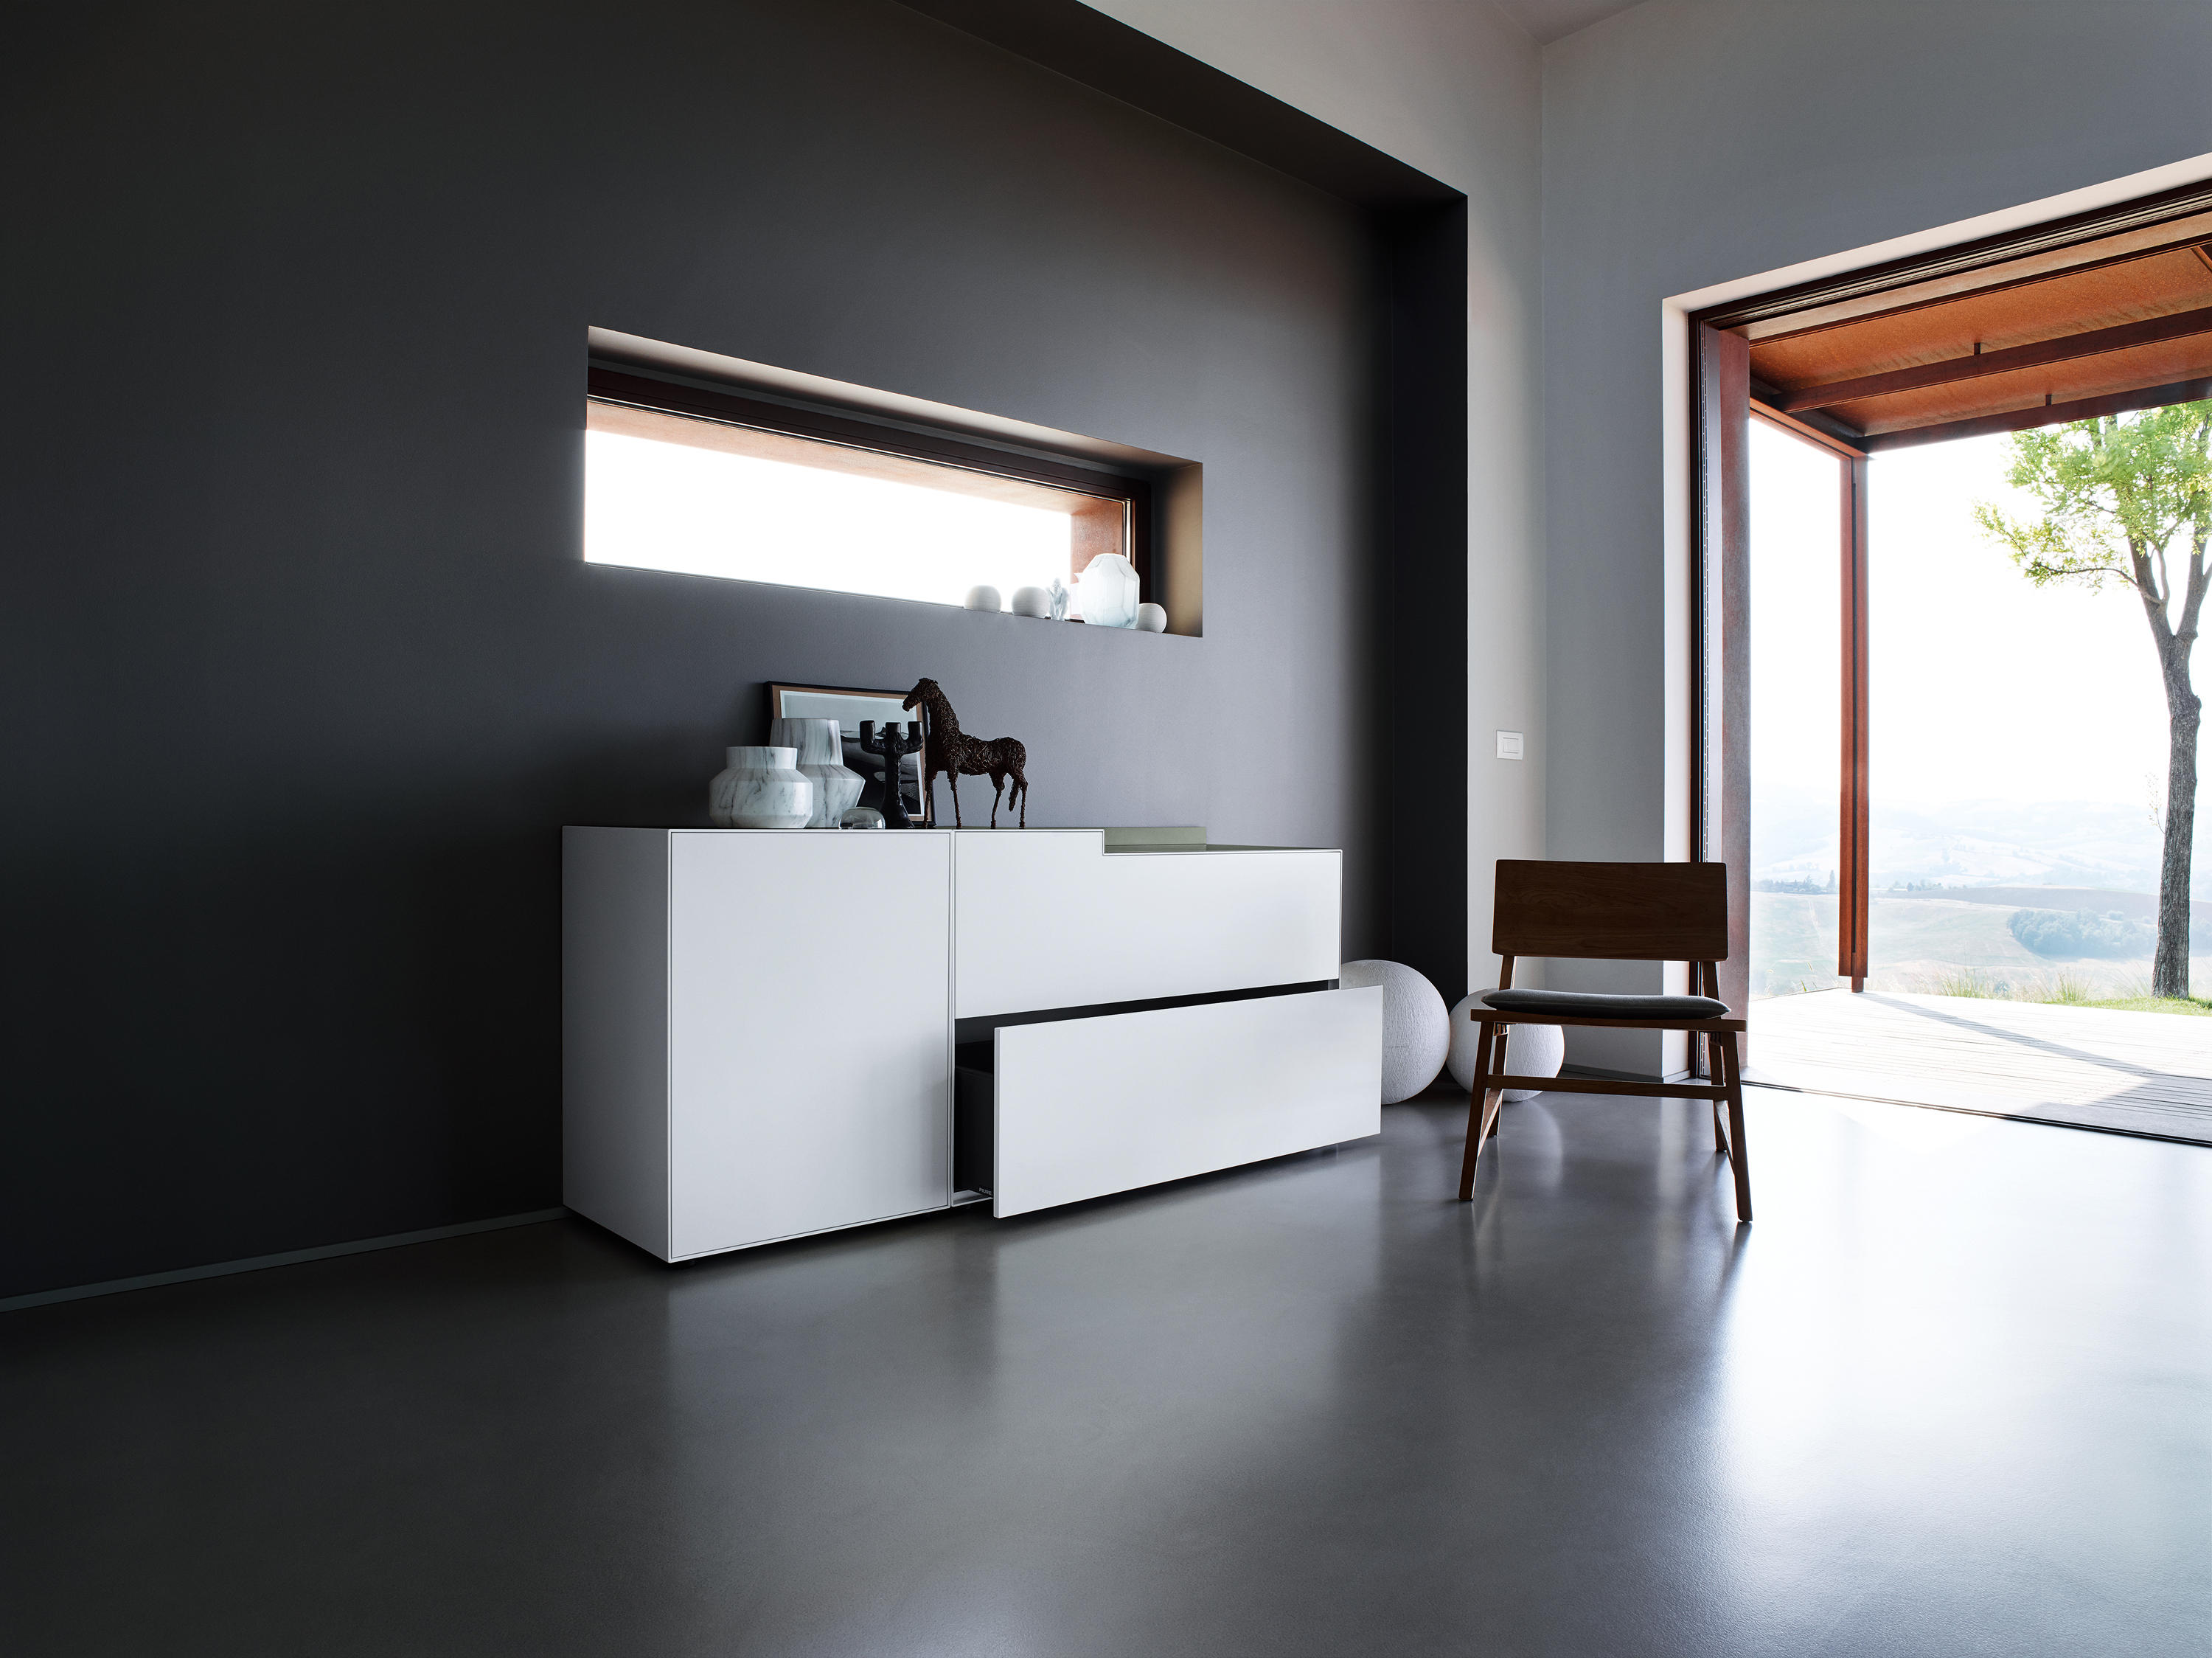 nex pur box sideboards from piure architonic. Black Bedroom Furniture Sets. Home Design Ideas